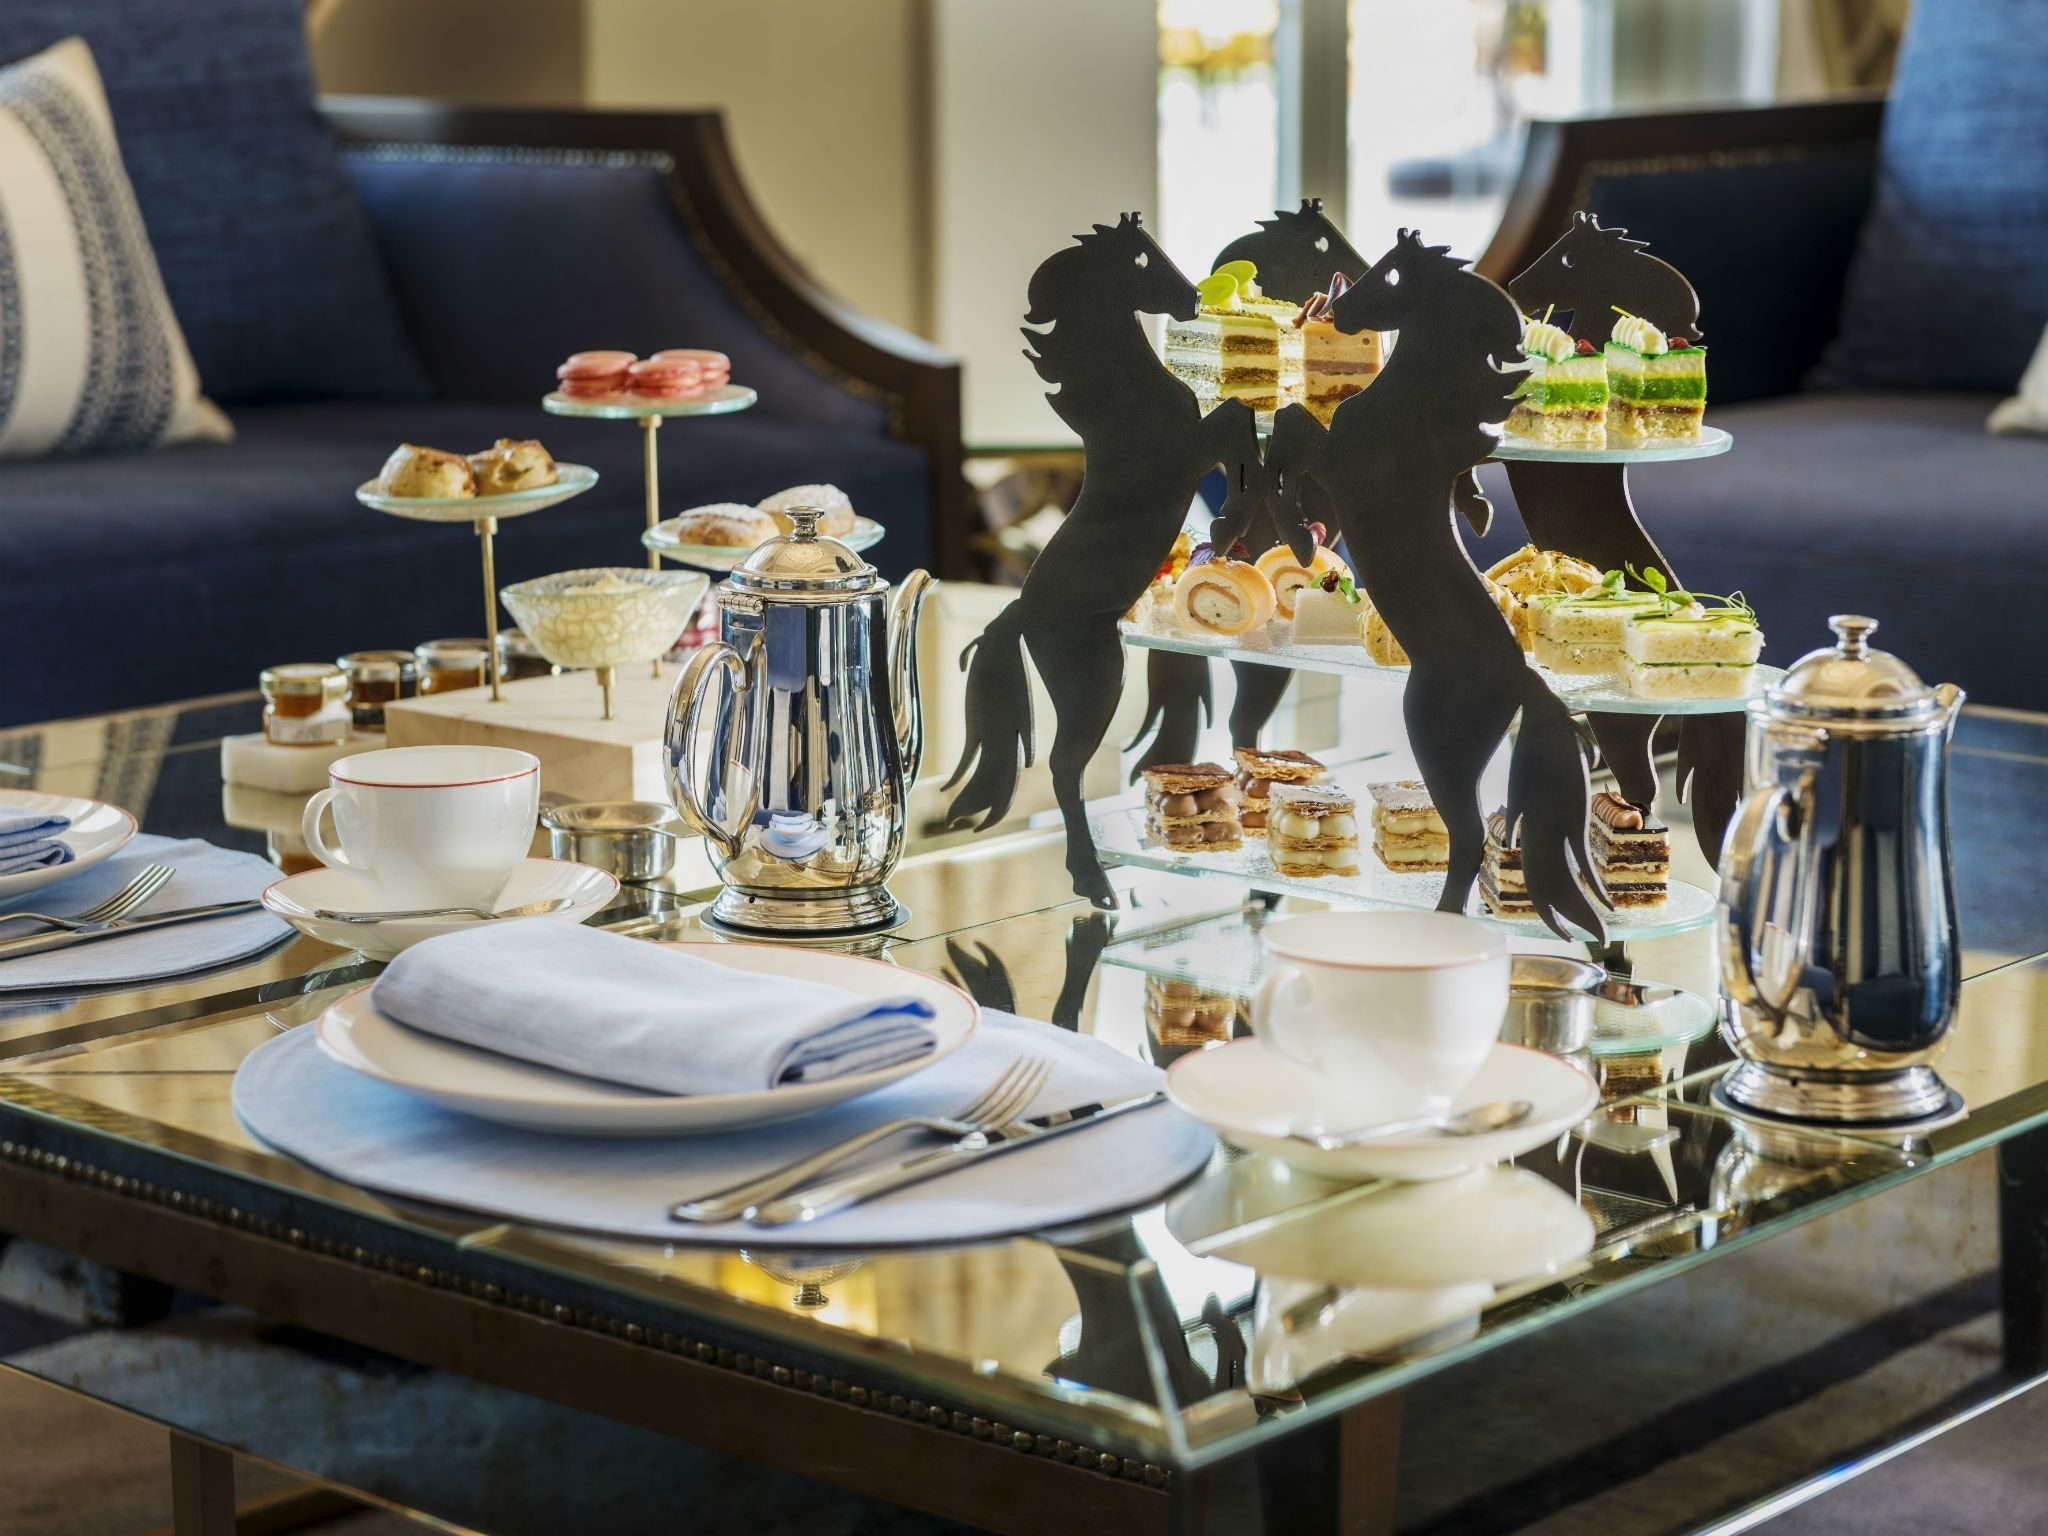 Afternoon Tea at St Regis Polo